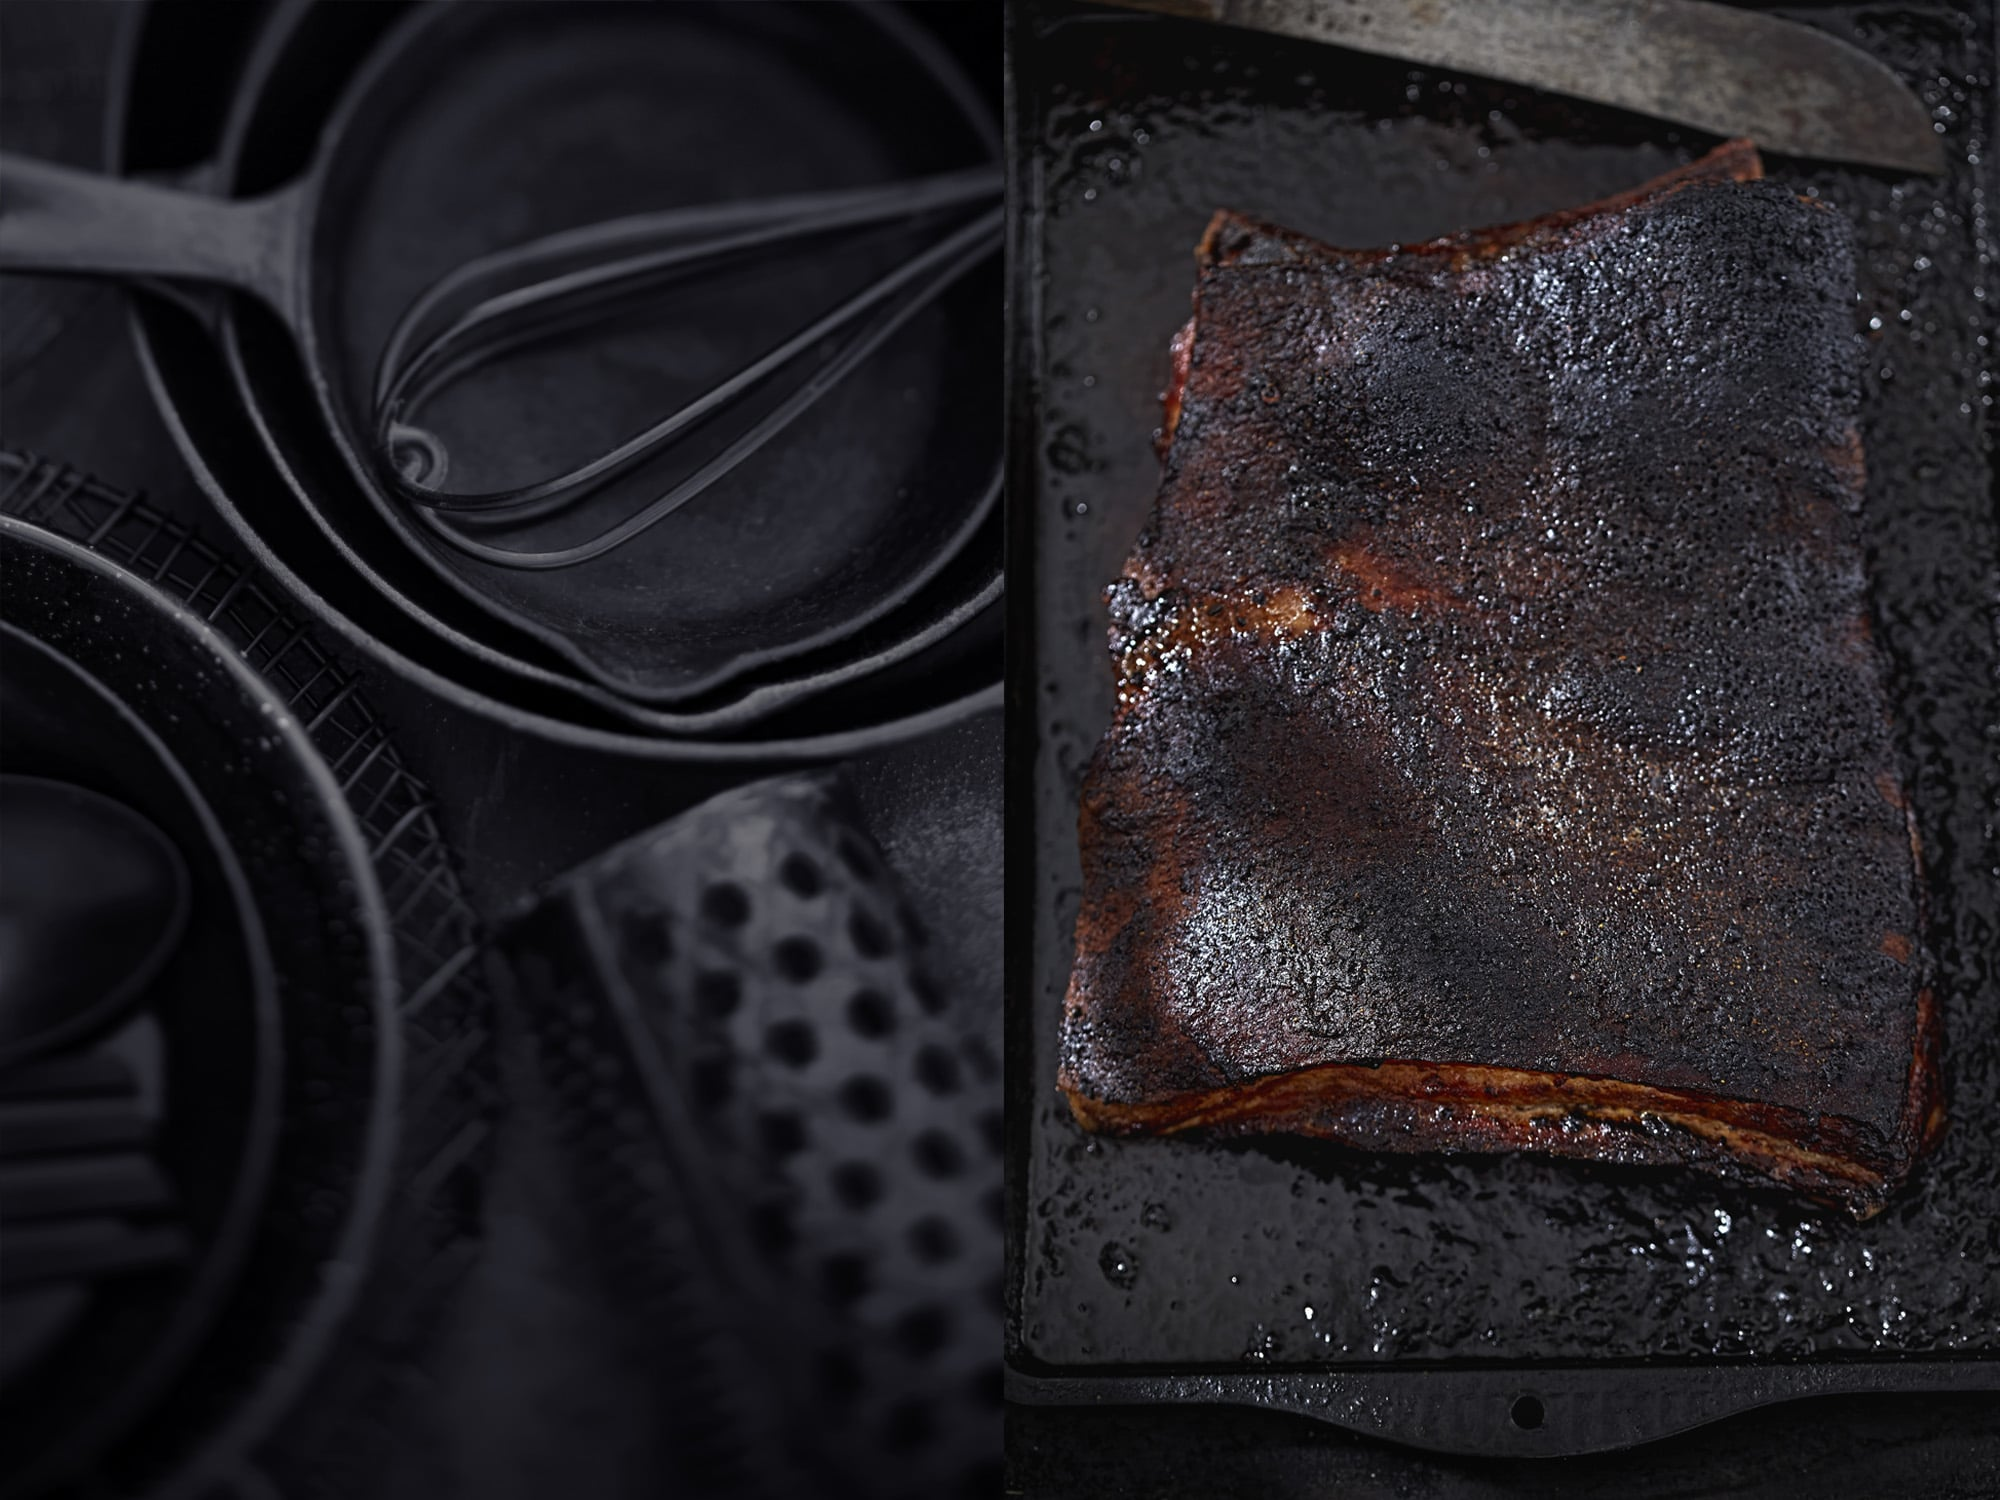 Back to black, Kitchen tools and Mexican rub pork belly